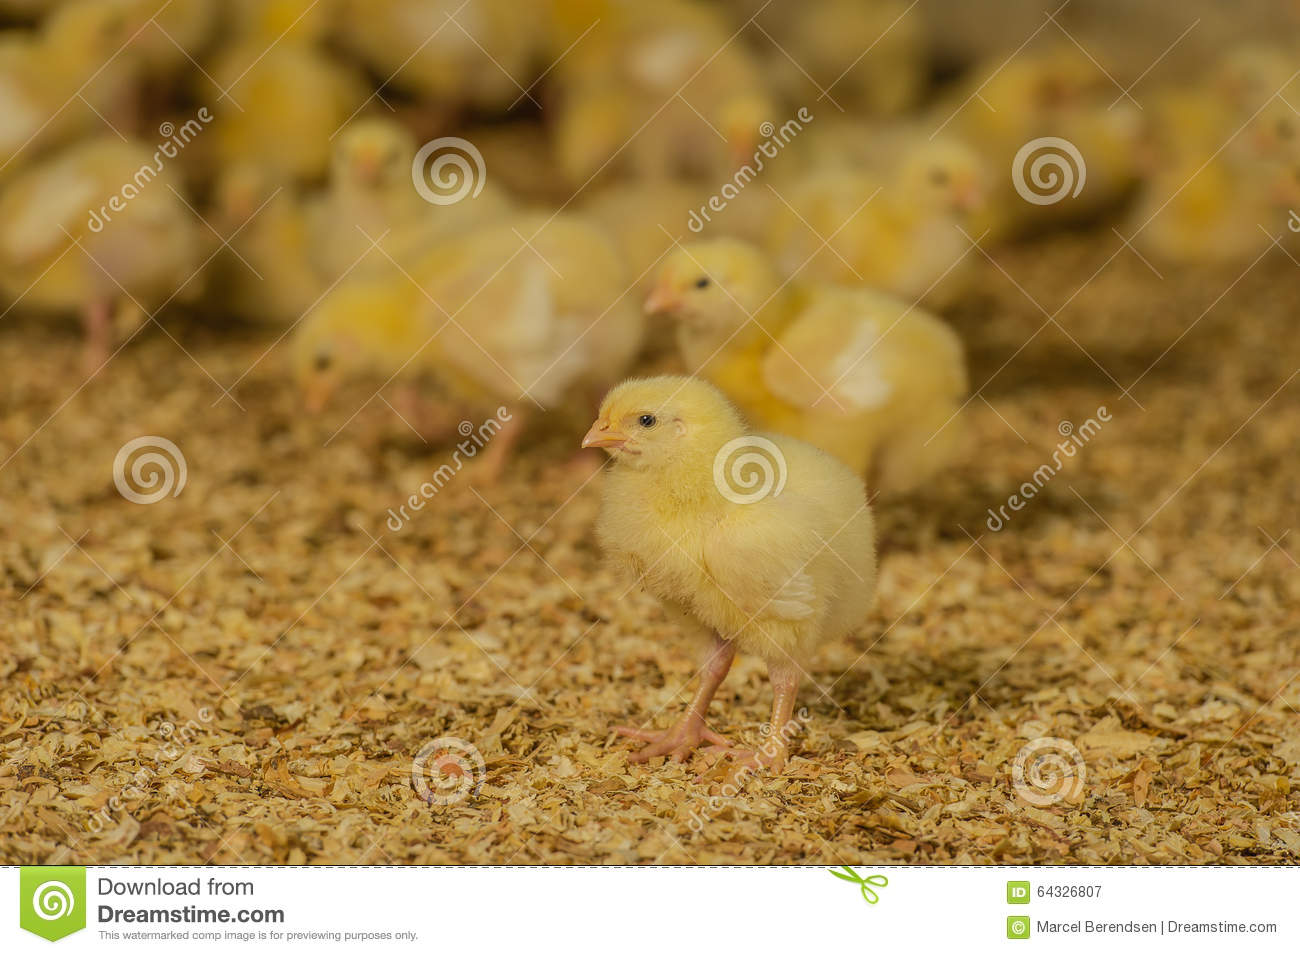 farm animals poultry broilers portrait attentive healthy seven day old slow growing broiler chick 64326807